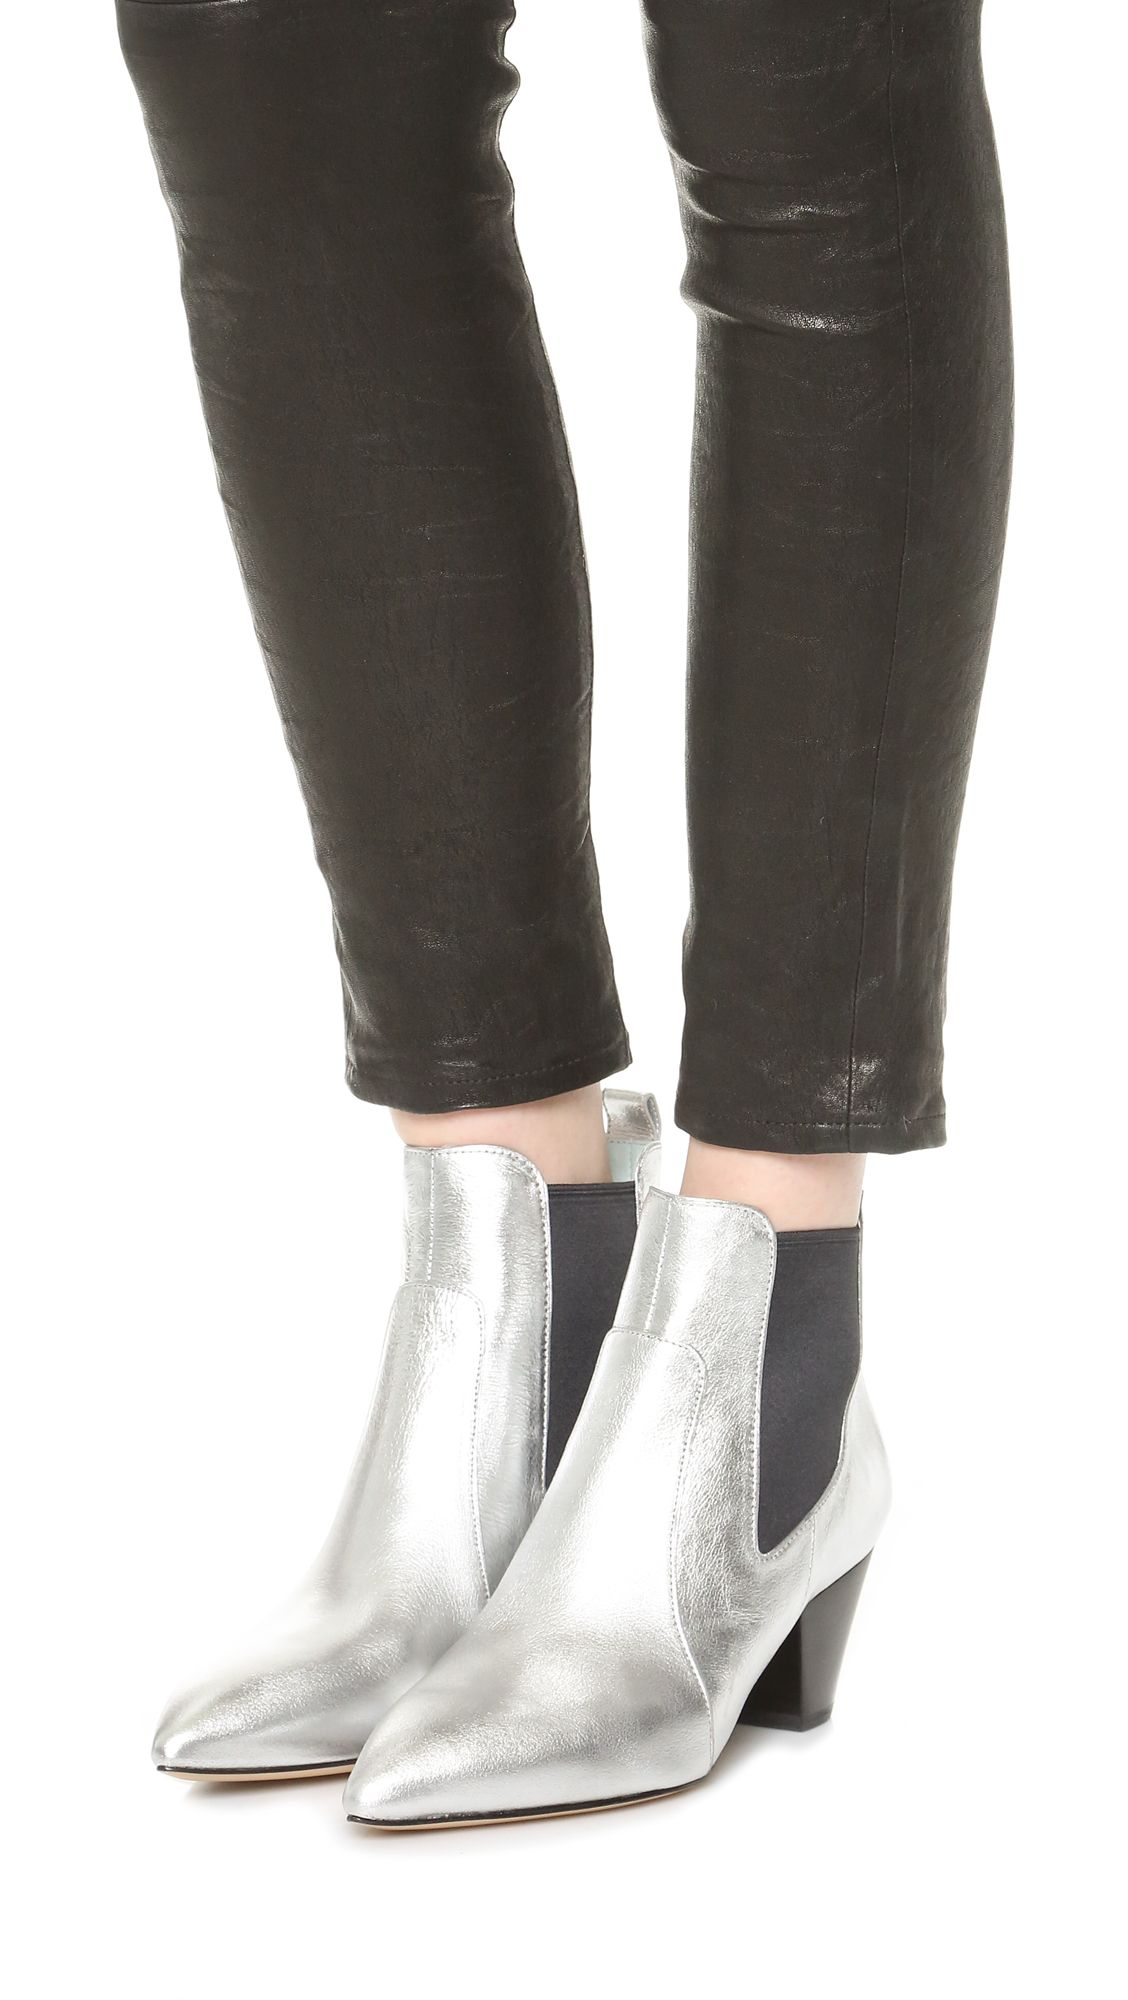 90159ccf2e8 Marc jacobs kim chelsea booties boots silver Bottines